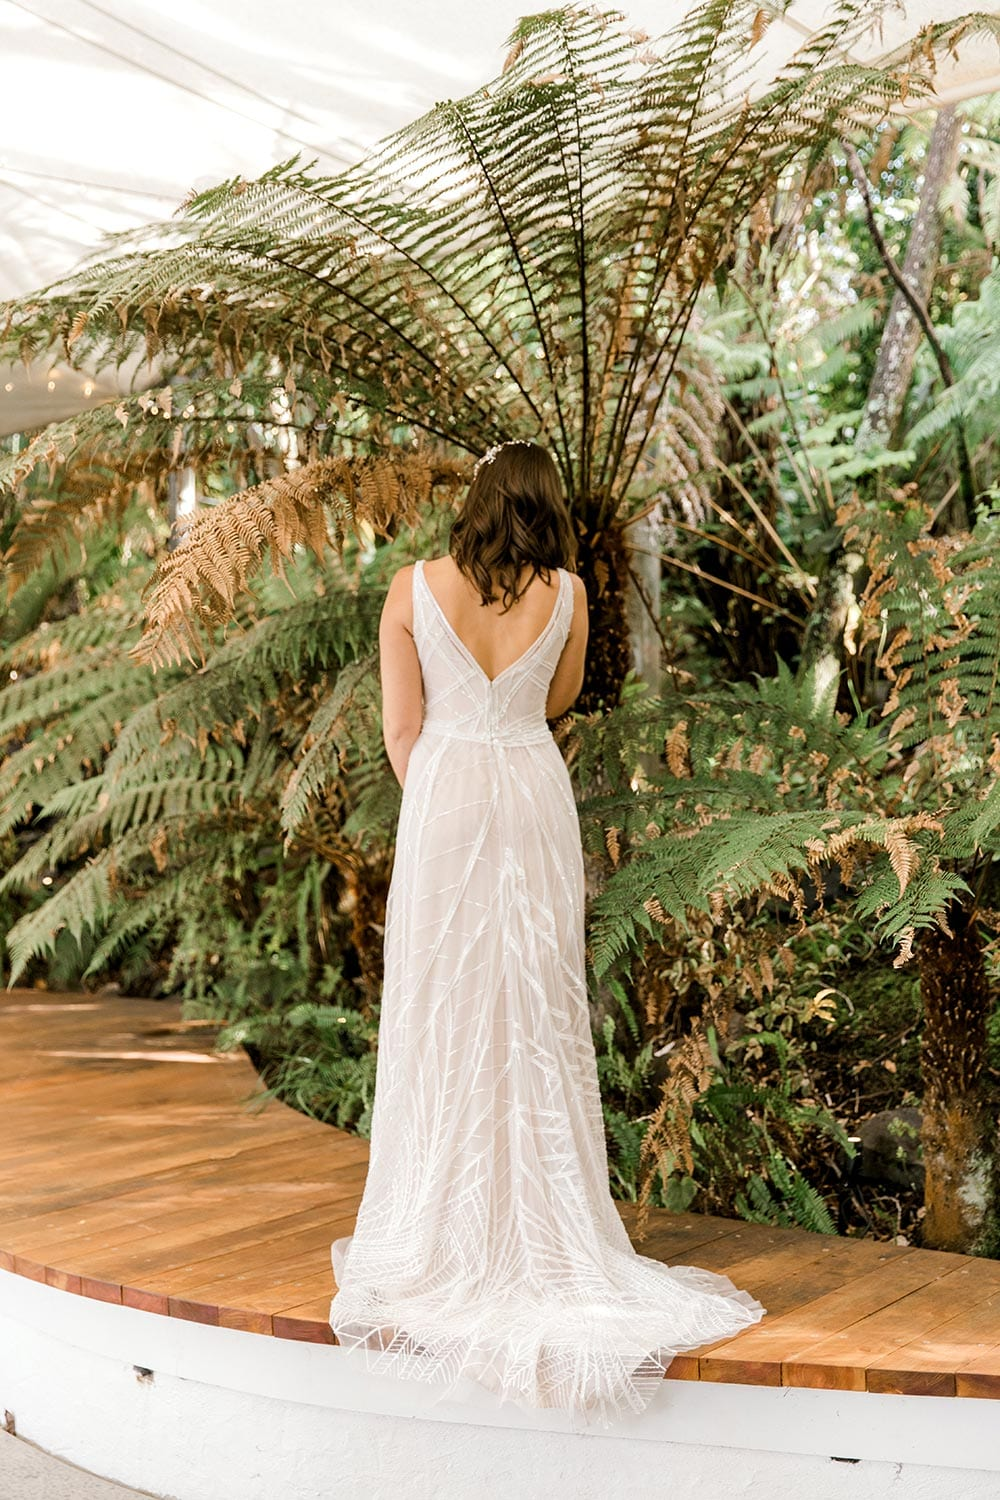 Amber Wedding Dress from Vinka Design. Beautiful wedding dress with V-neckline bodice & V-shaped back on a soft blush/light nude base. Rich beading sculpts the waist & relaxed-fit skirt falls to a train. Full length of dress from the back. Photographed at Tui Hills by Emmaline Photography.